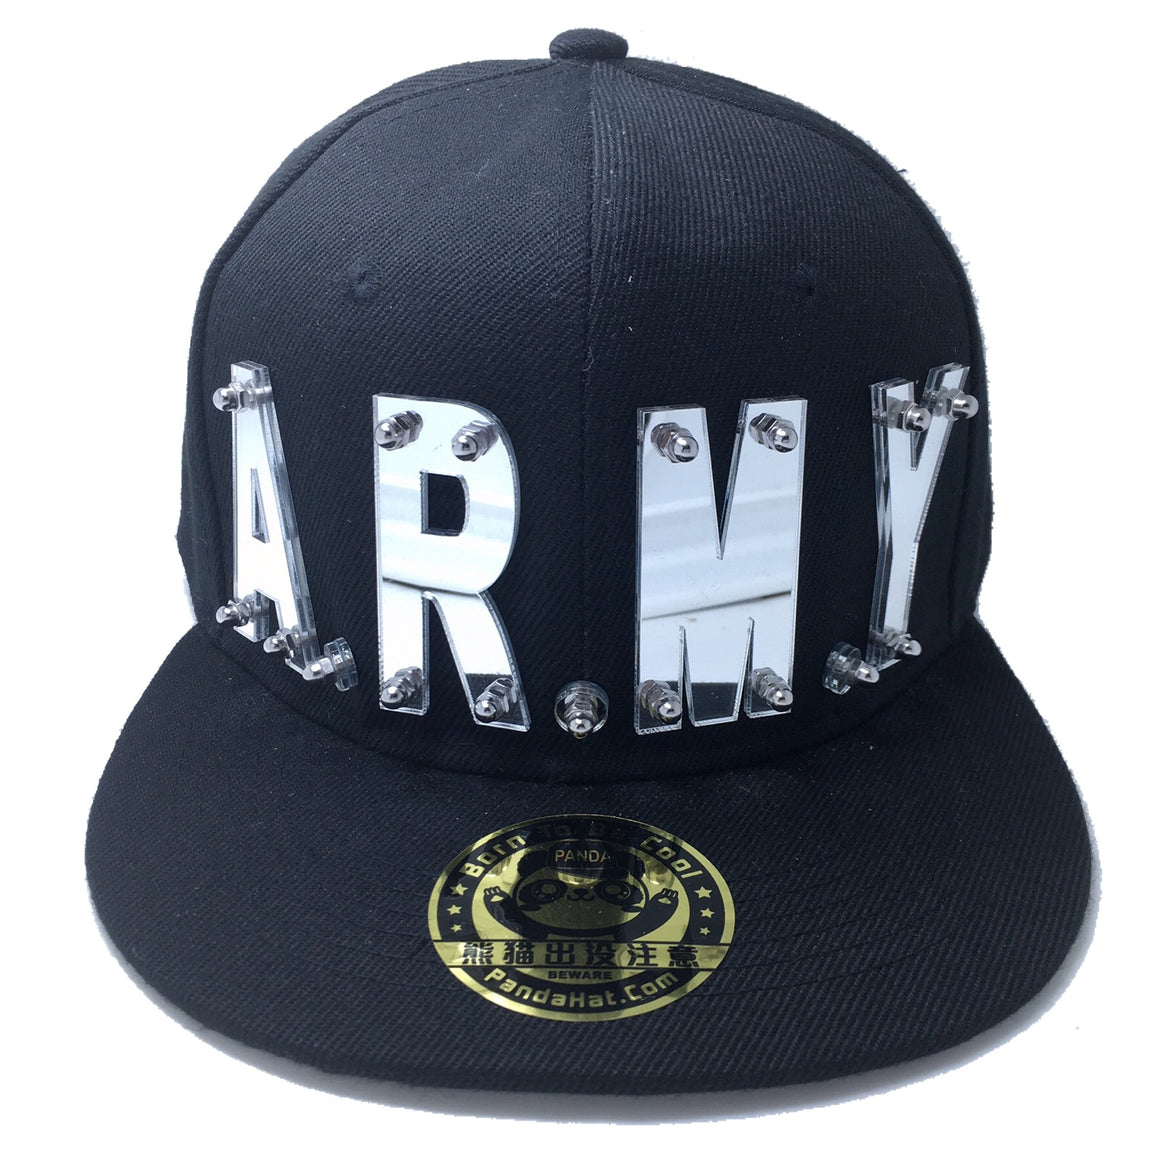 BTS ARMY HAT